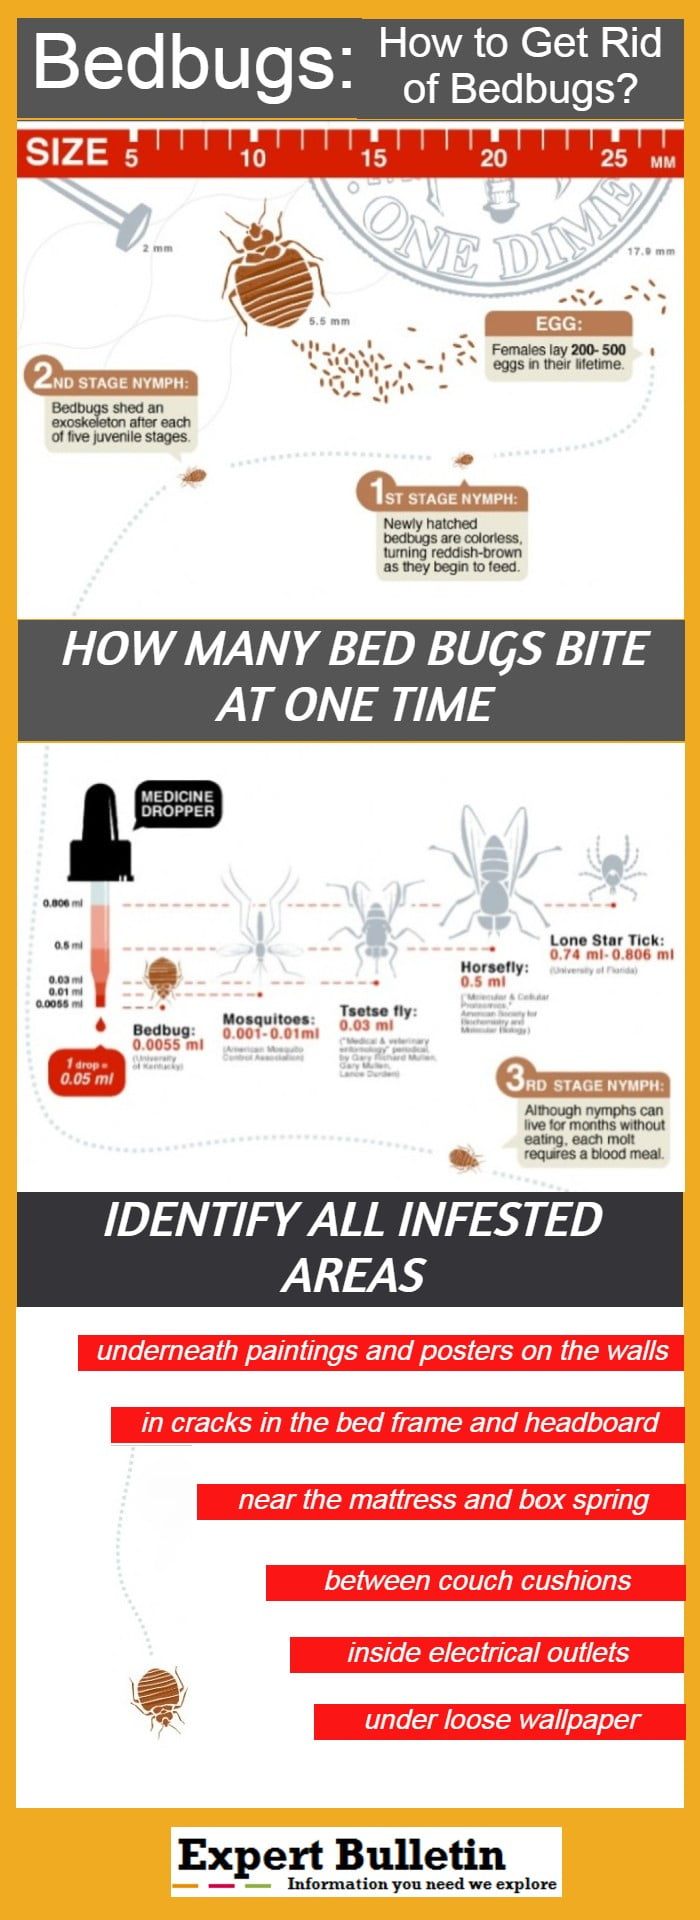 Bedbugs Infographic